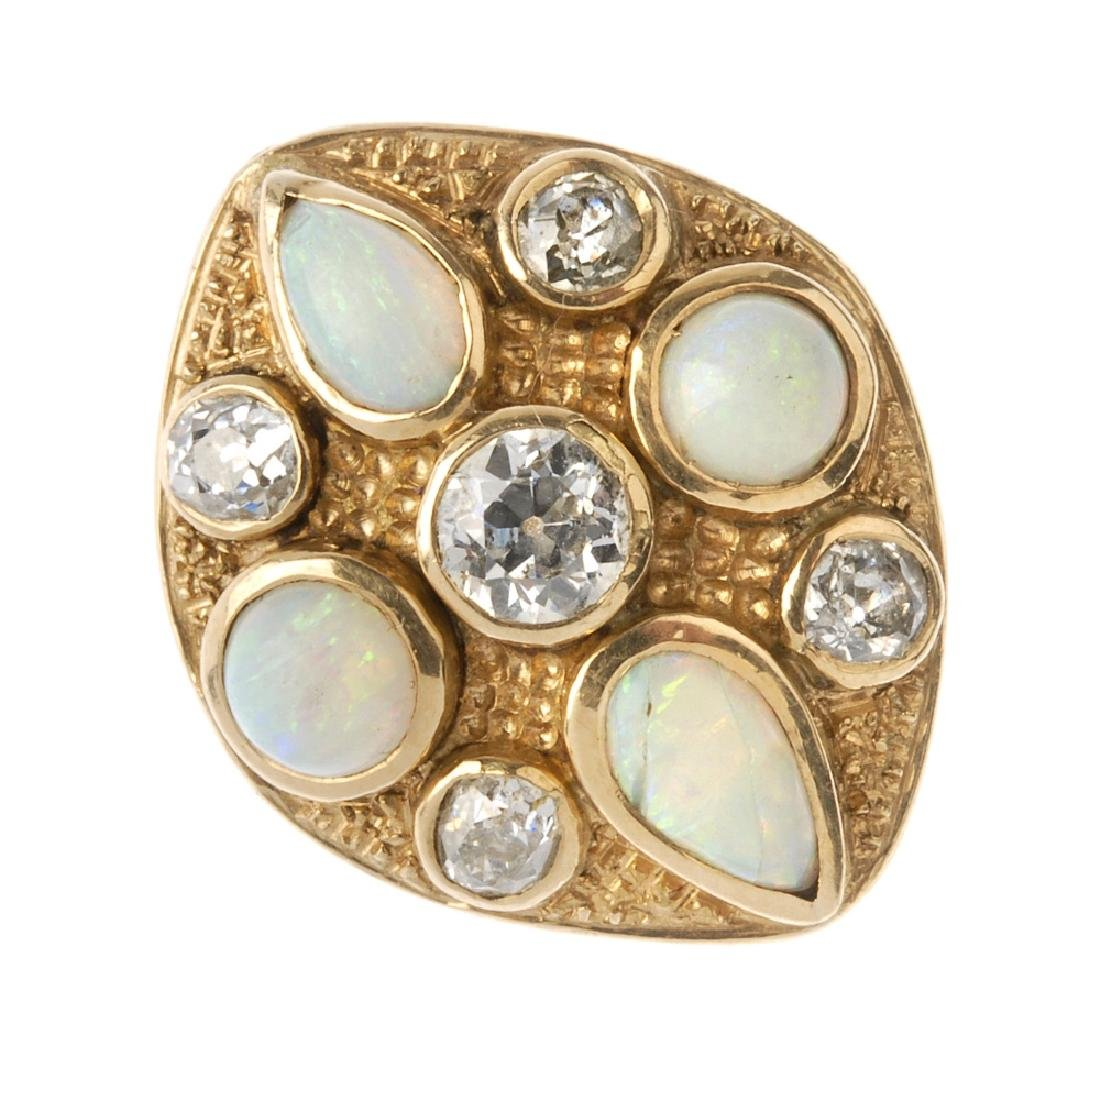 A diamond and opal dress ring. The marquise-shape